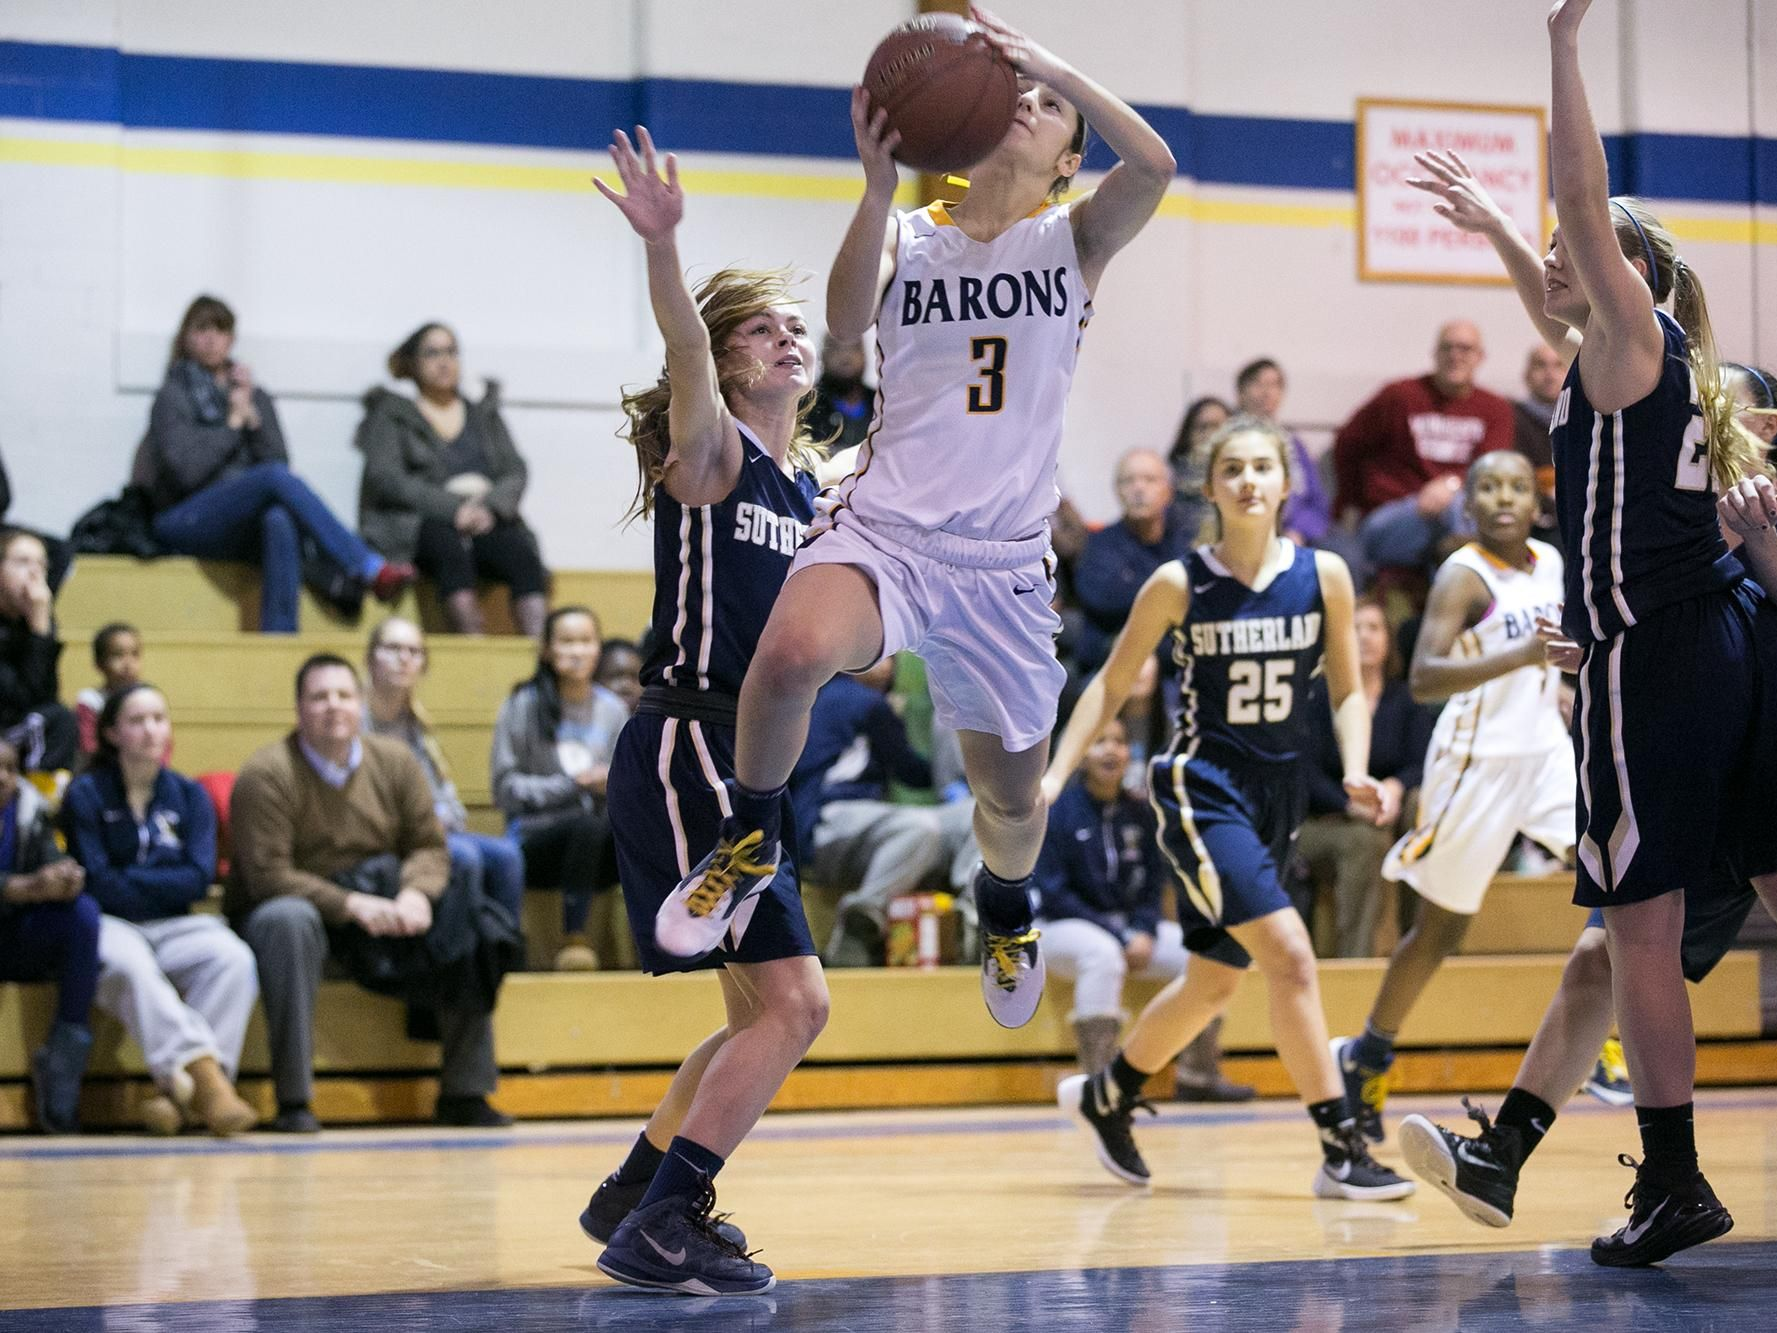 Brighton's Brooke Wolff drives to the hoop during a game against Pittsford Sutherland at Brighton High School on Thursday, Jan. 21, 2016. Wolff was 8-for-8 from the free throw line in the fourth quarter.